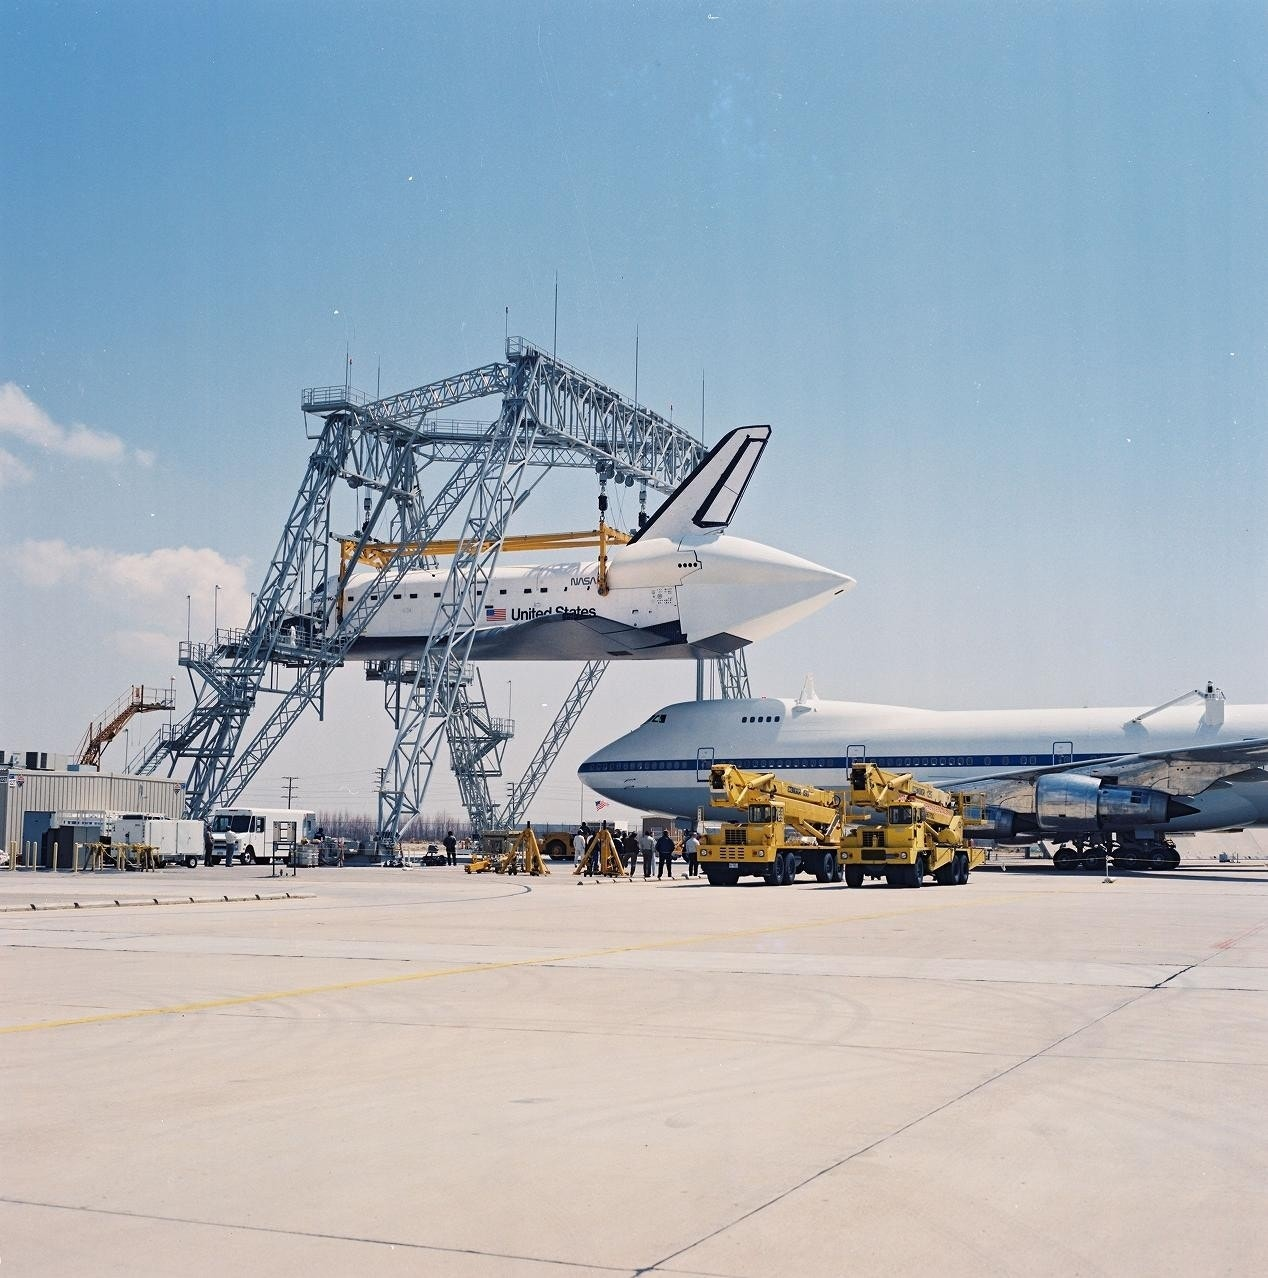 A Mighty Endeavour: Building a Space Shuttle | Fox News